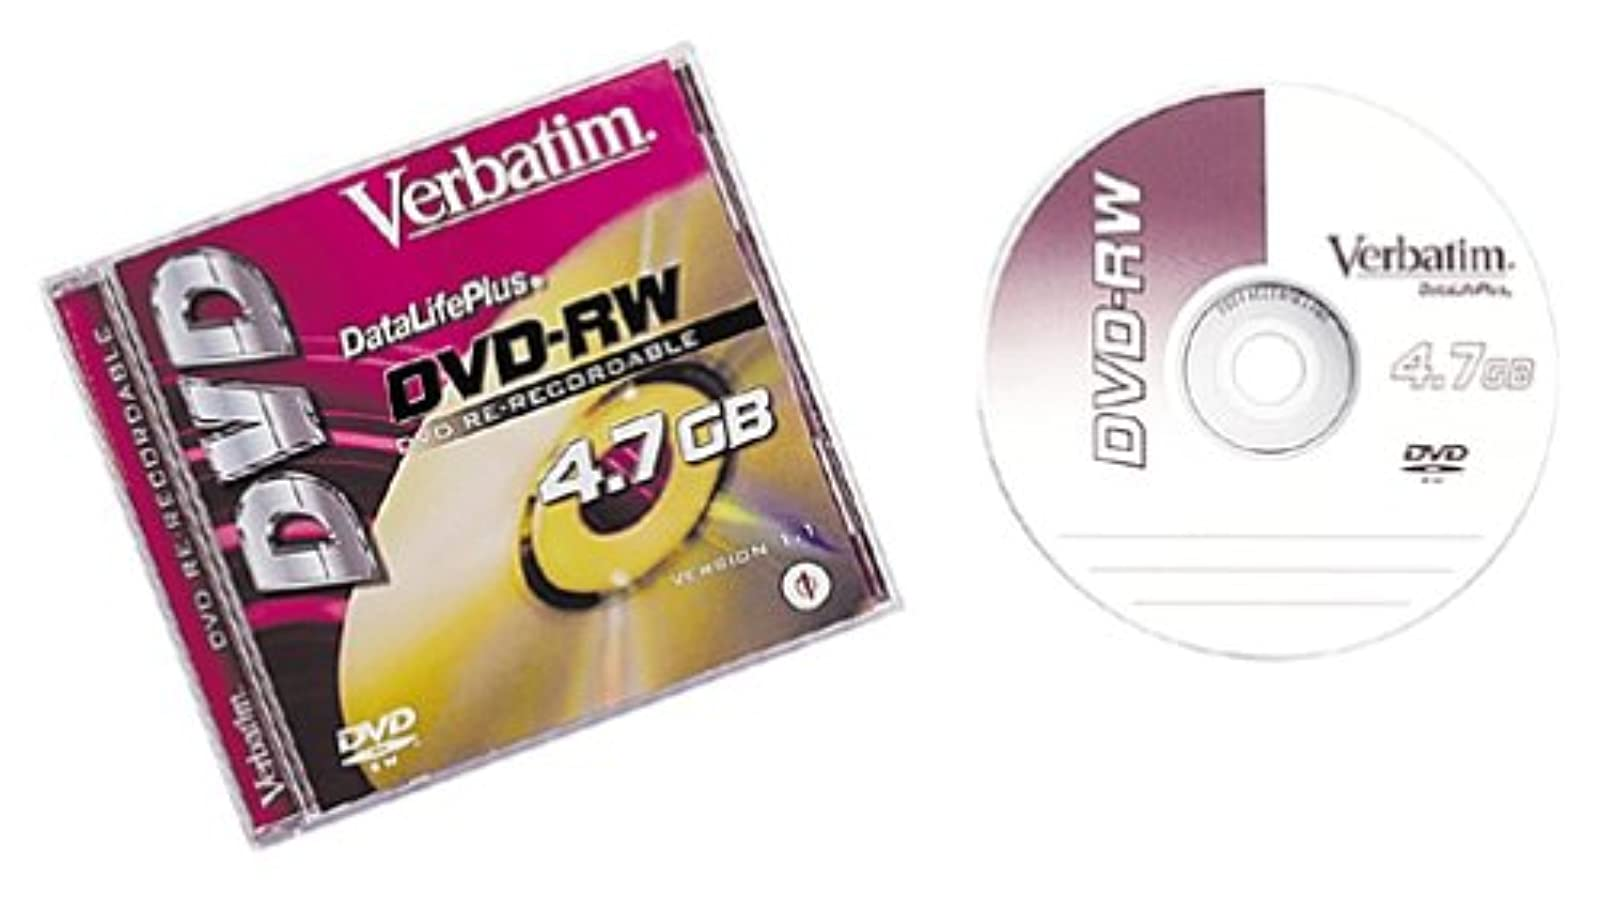 1-pack DVD-RW 4.7GB Lot Of 1